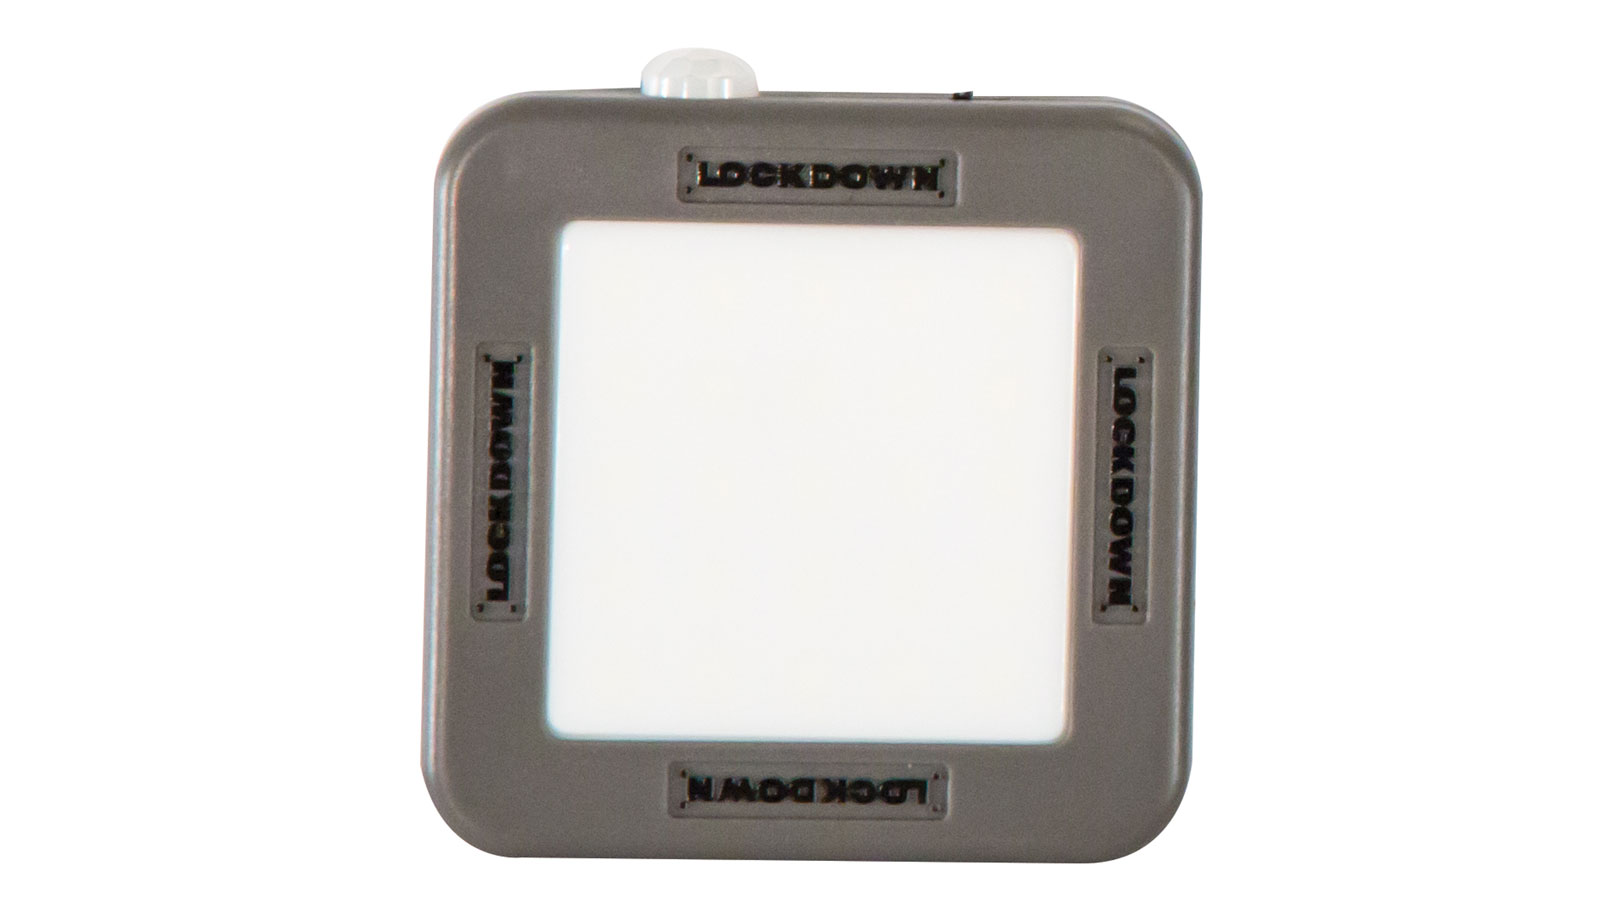 Lockdown Automatic Cordless 25-LED Vault Lights 2-Pack - Safes Cabinets And Accessories at Academy Sports